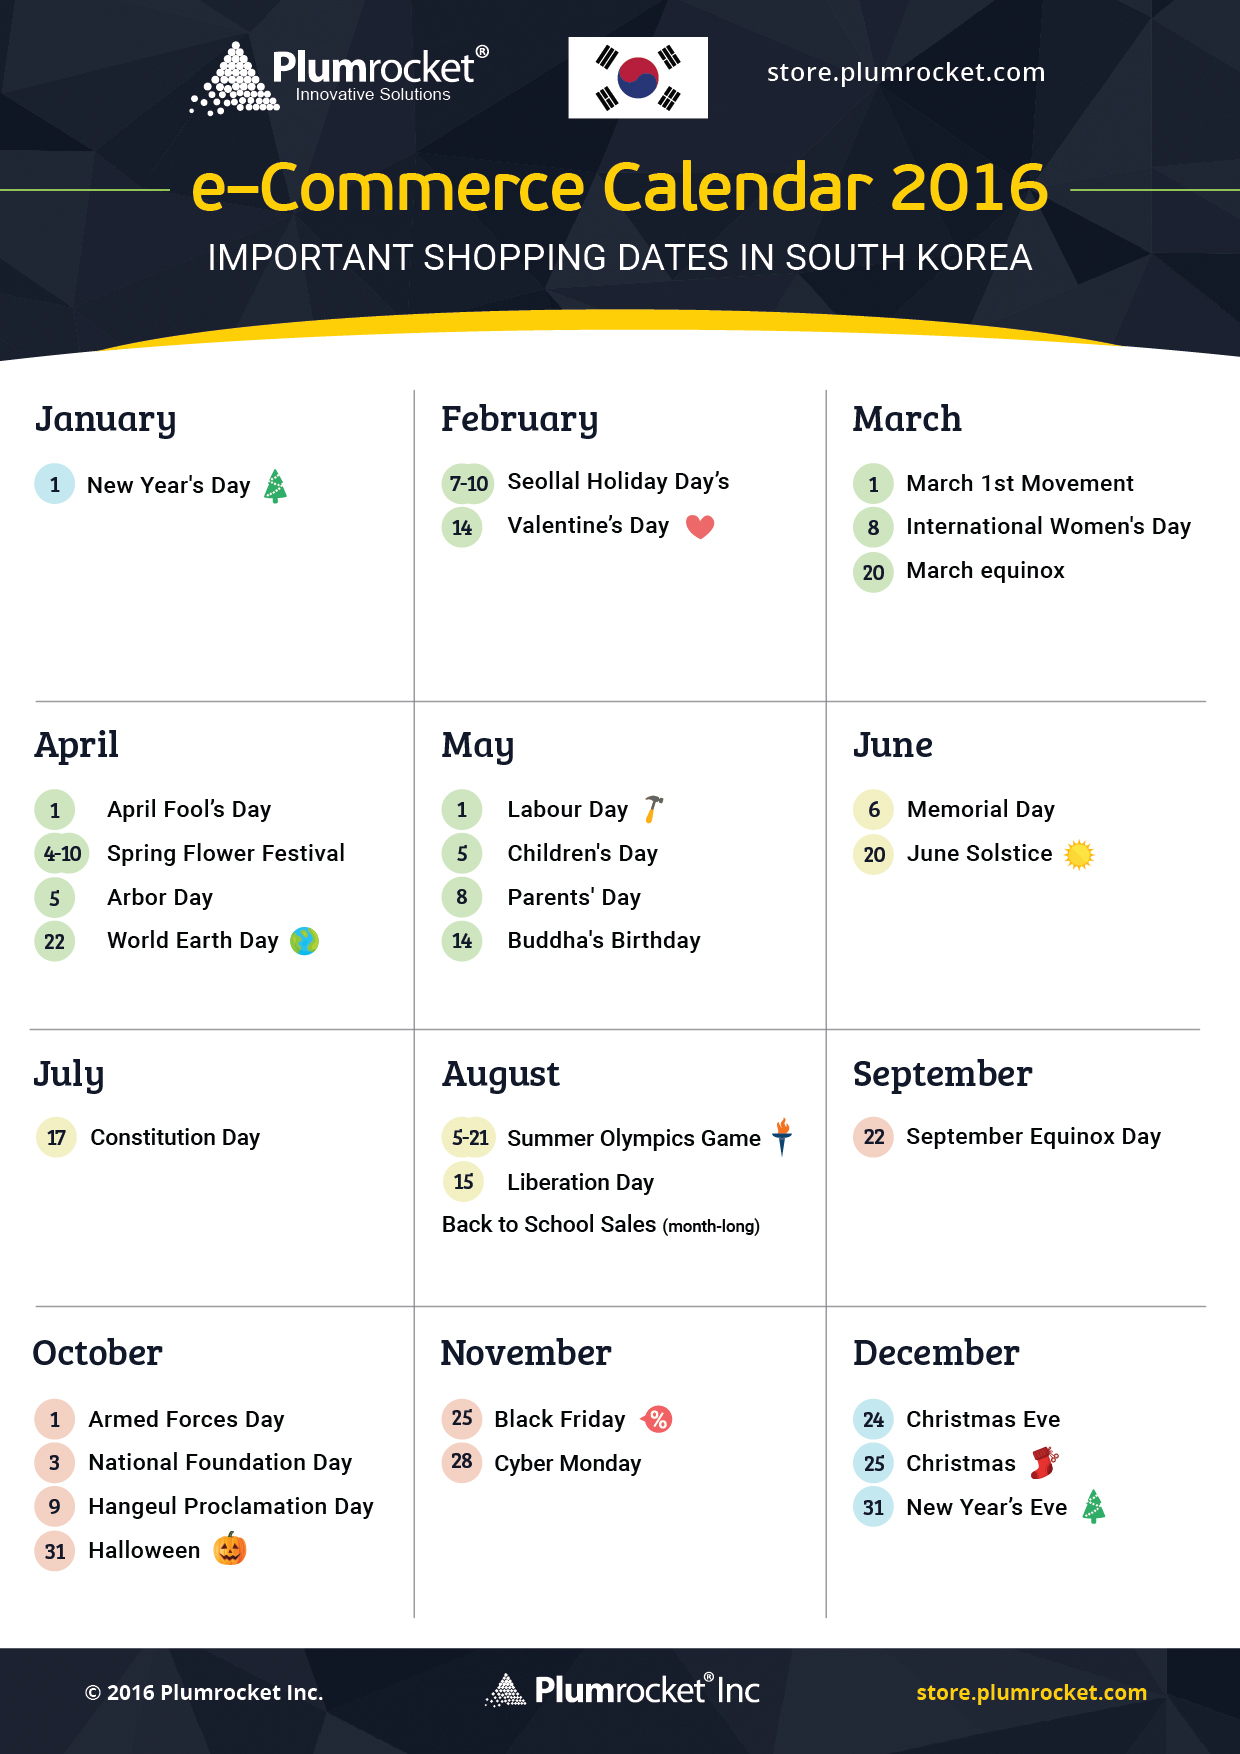 ecommerce-calendar-south-korea-2016-by-Plumrocket